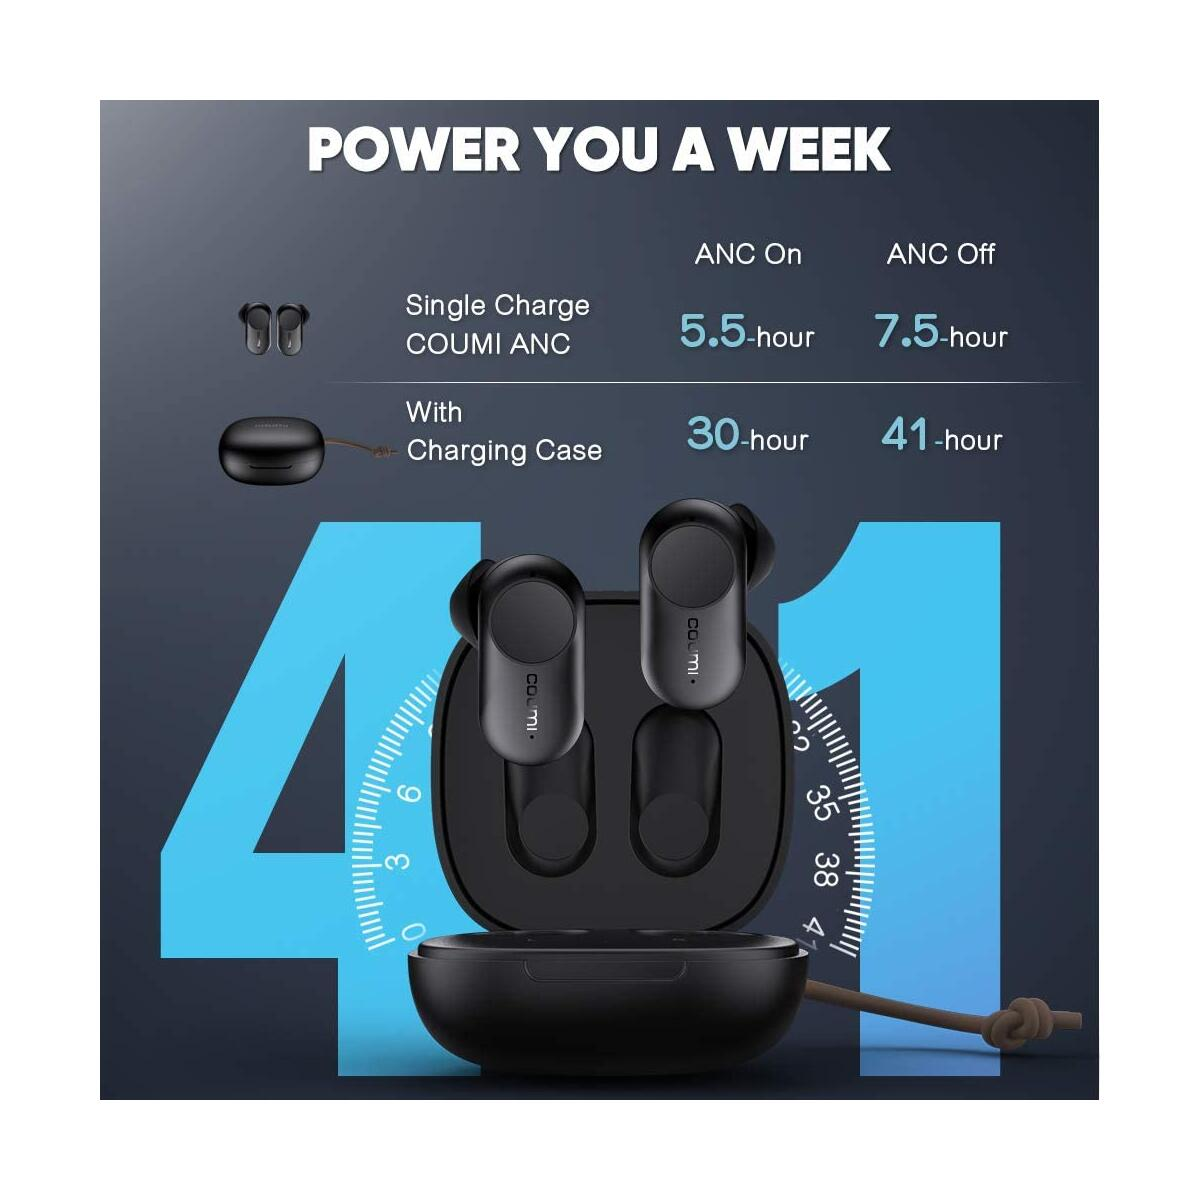 Wireless Earbuds Active Noise Cancelling, COUMI ANC-860 Bluetooth Earbuds with 6 Mics, Stereo Deep Bass Earphones, 41Hrs ANC Earbuds, IPX7 Waterproof, USB-C Quick Charging Case, Smart Touch Control